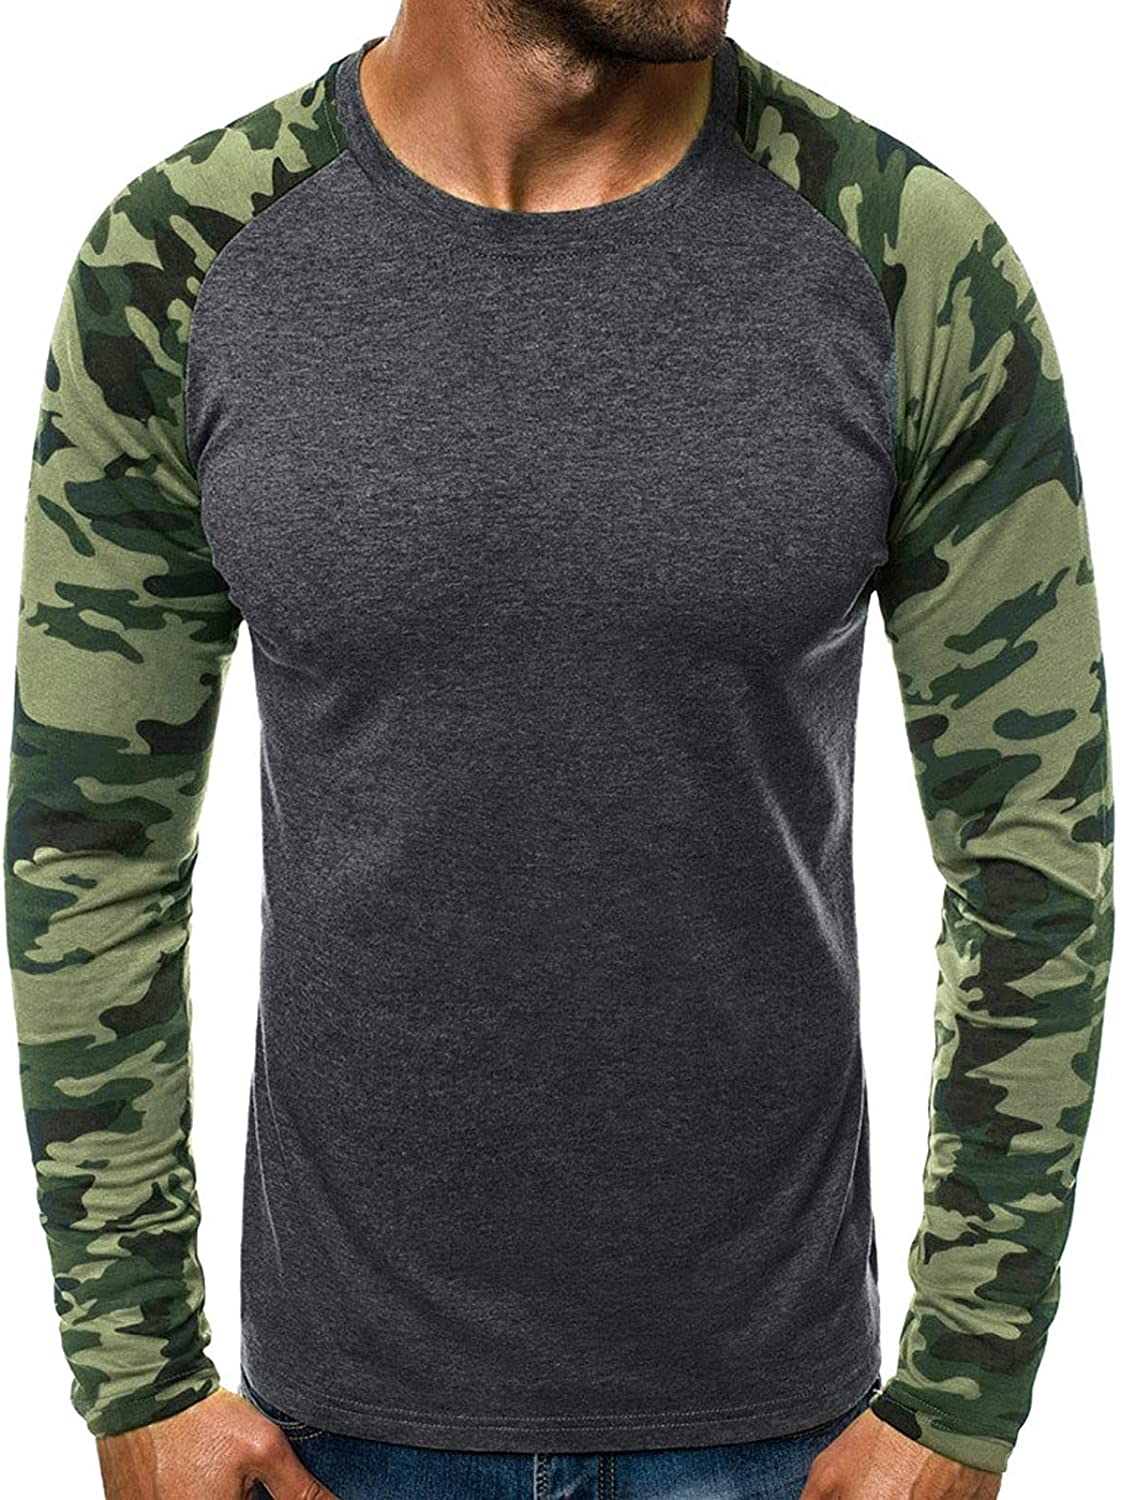 Maryia Men's Classic T-Shirt Lightweight Camo Long Sleeve Raglan Patchwork Casual Loose Fit Workout Fitness Tops